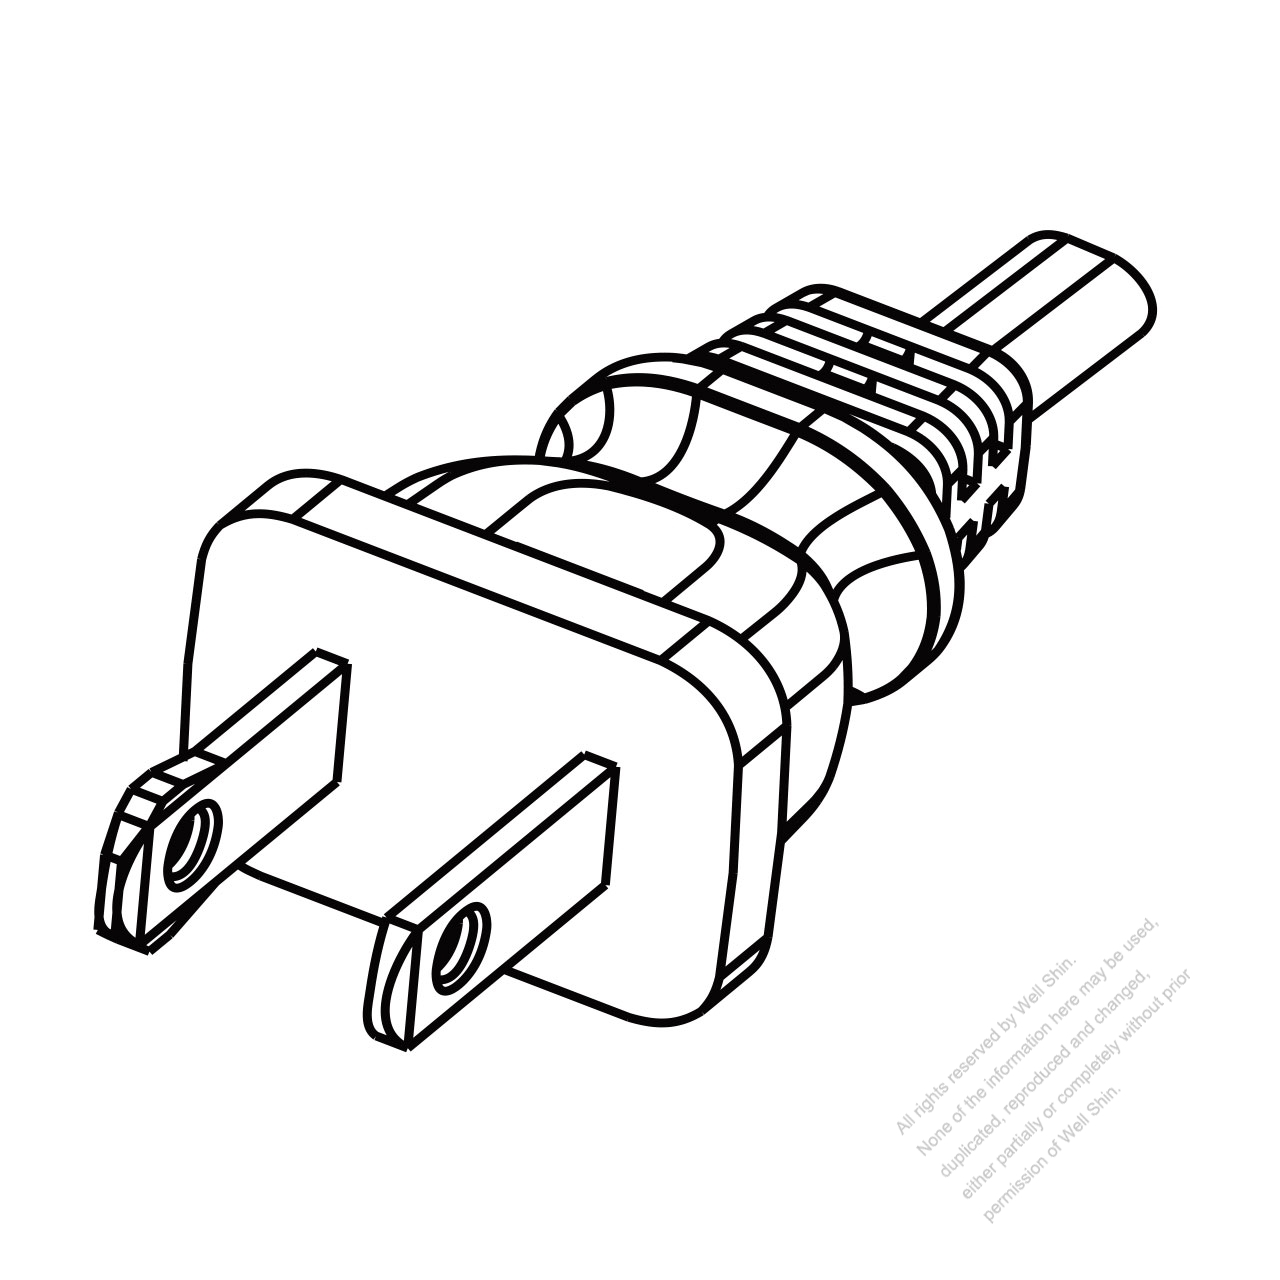 Polarized Plug Wiring Diagram on 3 prong 50 amp receptacle wiring